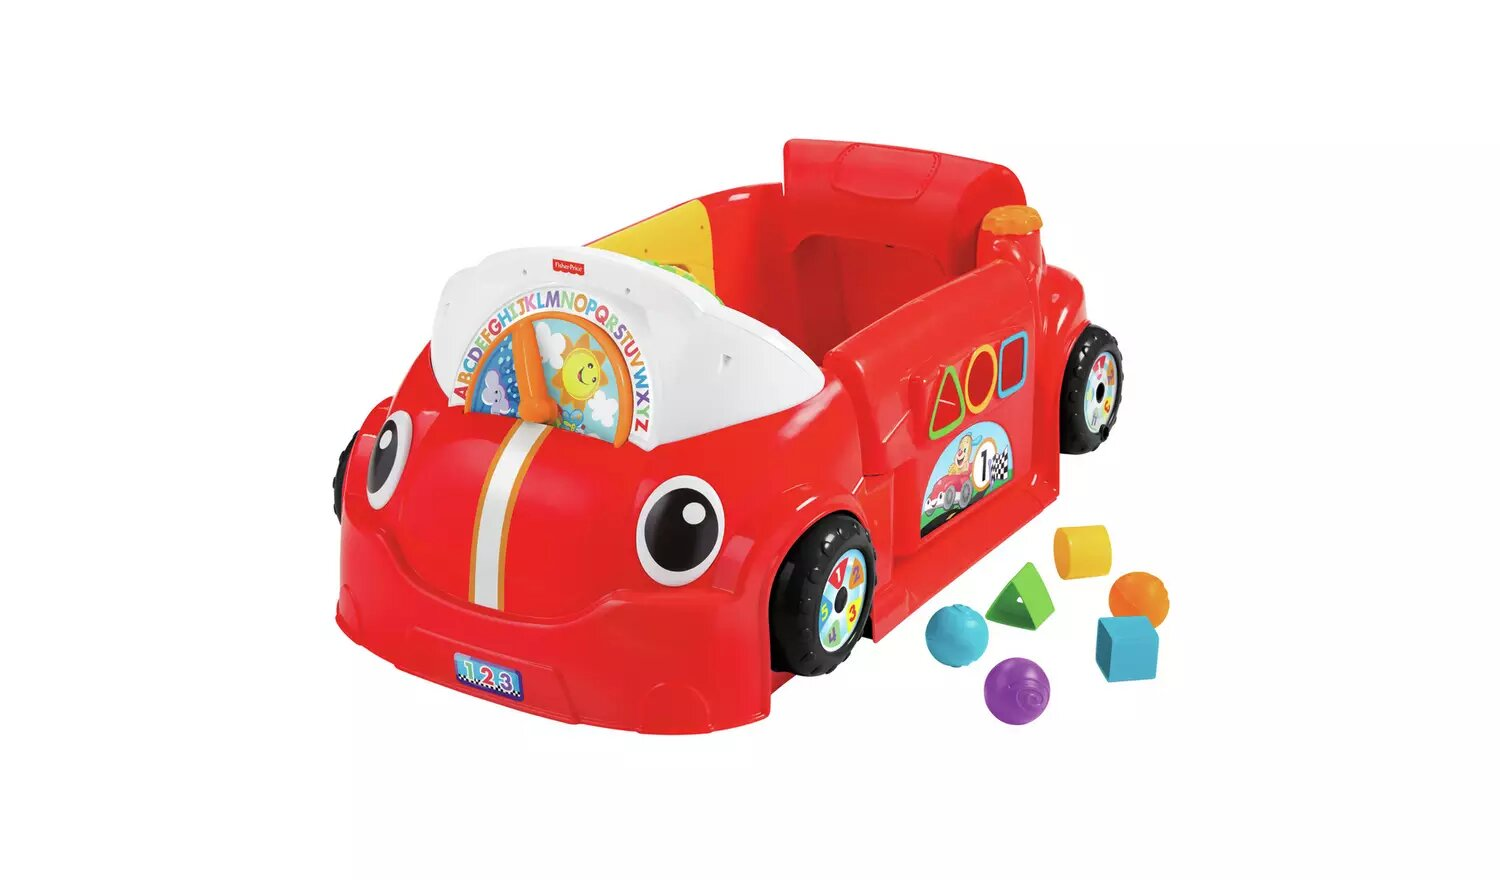 Fisher-Price Laugh & Learn Crawl Around Car.